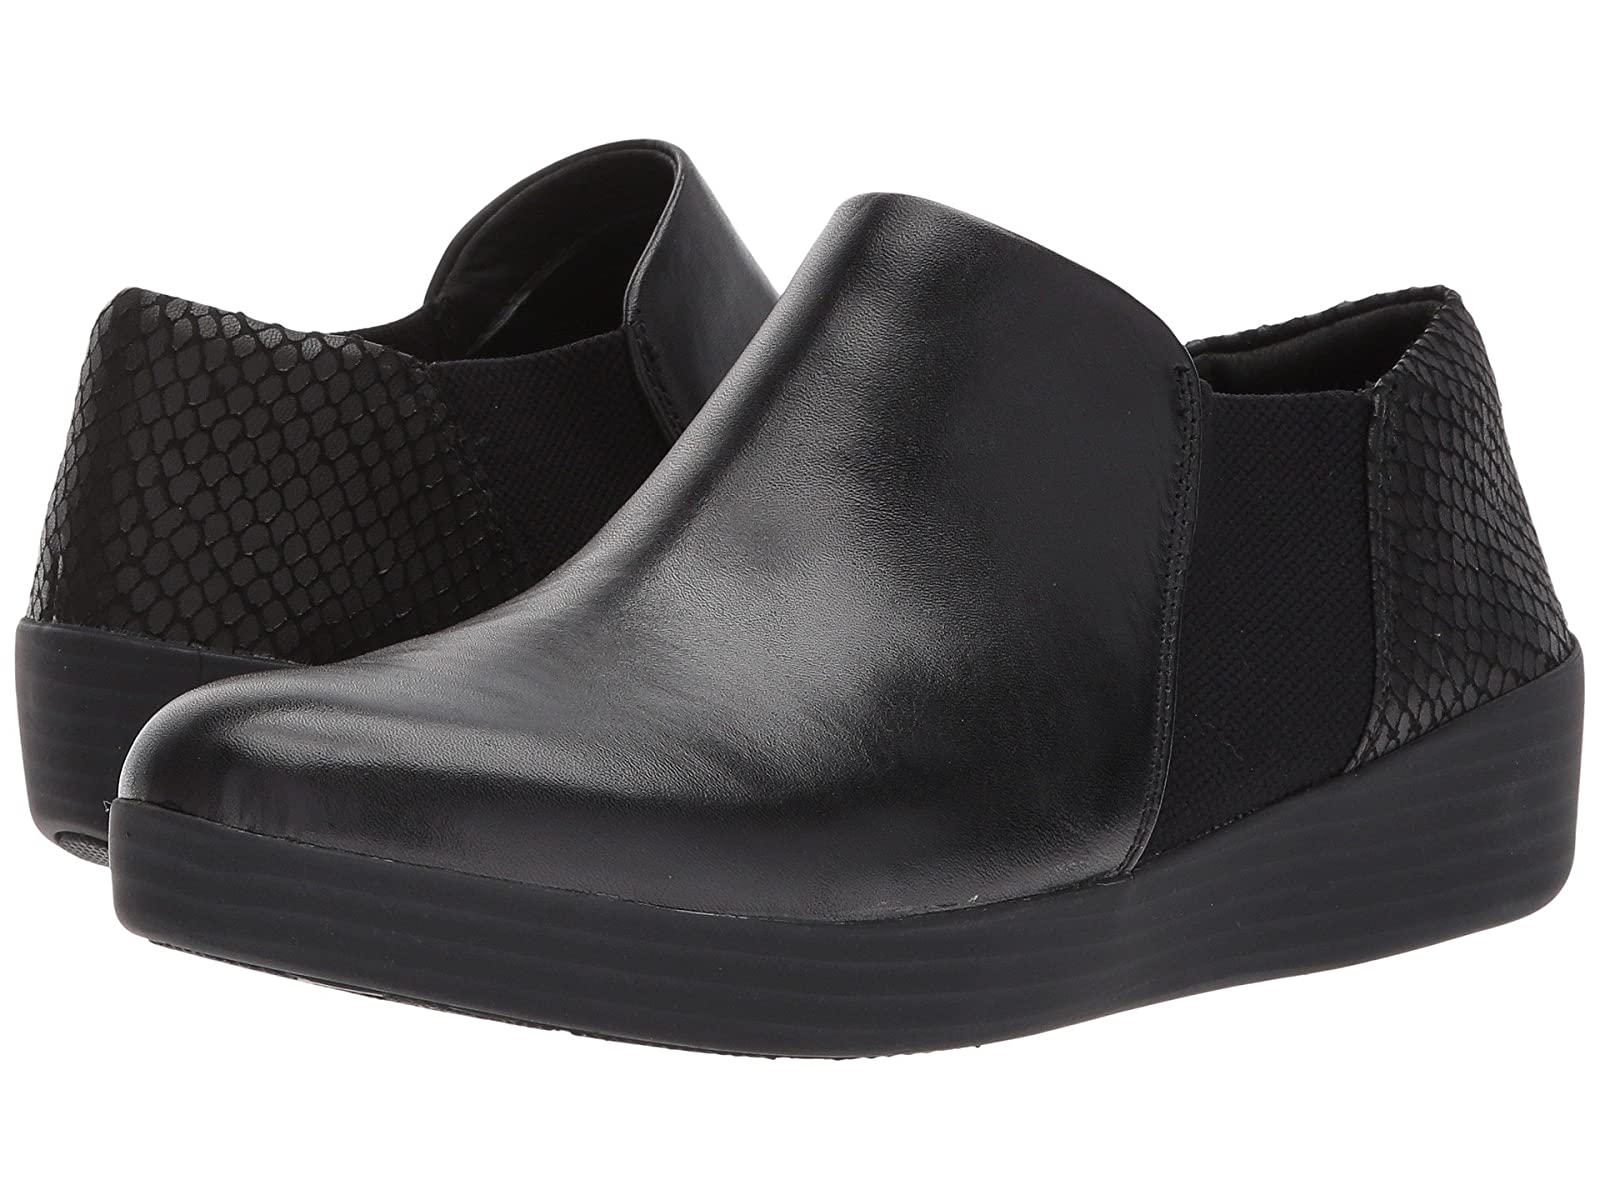 FitFlop Superchelsea Slip-OnCheap and distinctive eye-catching shoes